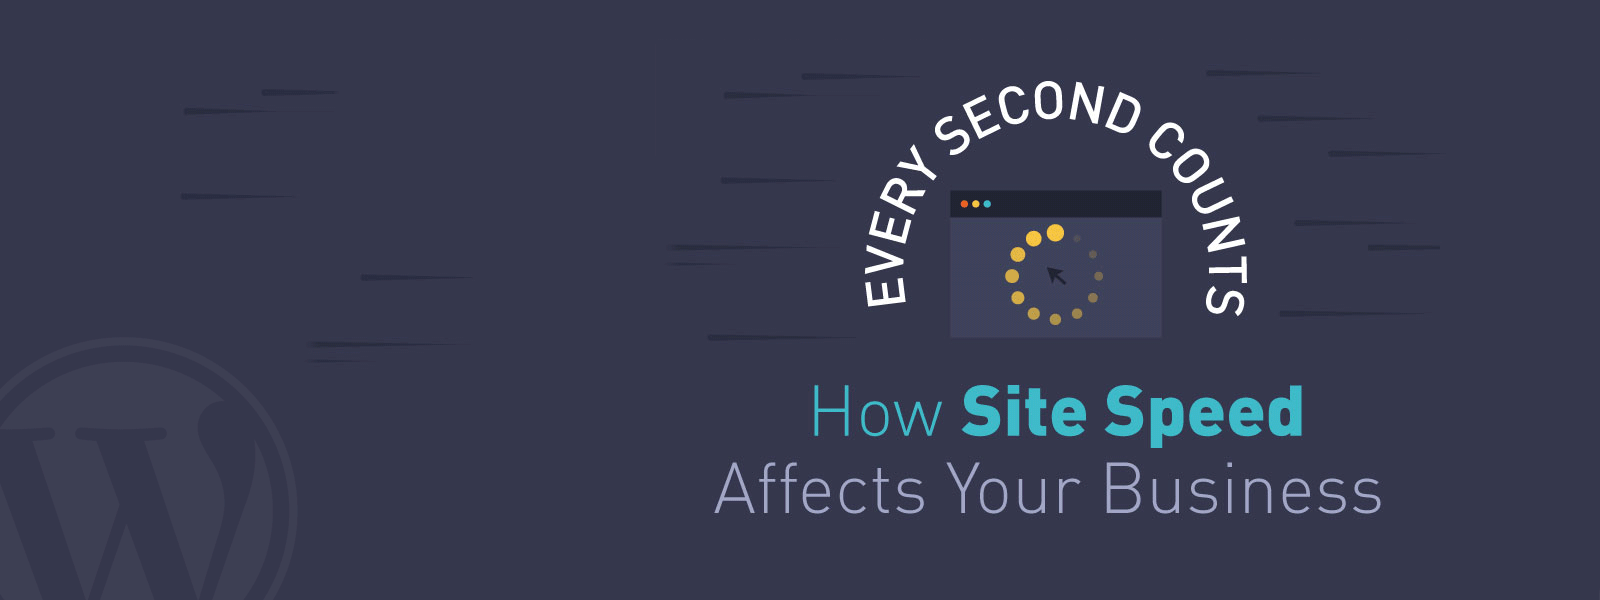 Why Site Speed Matters - Featured Image